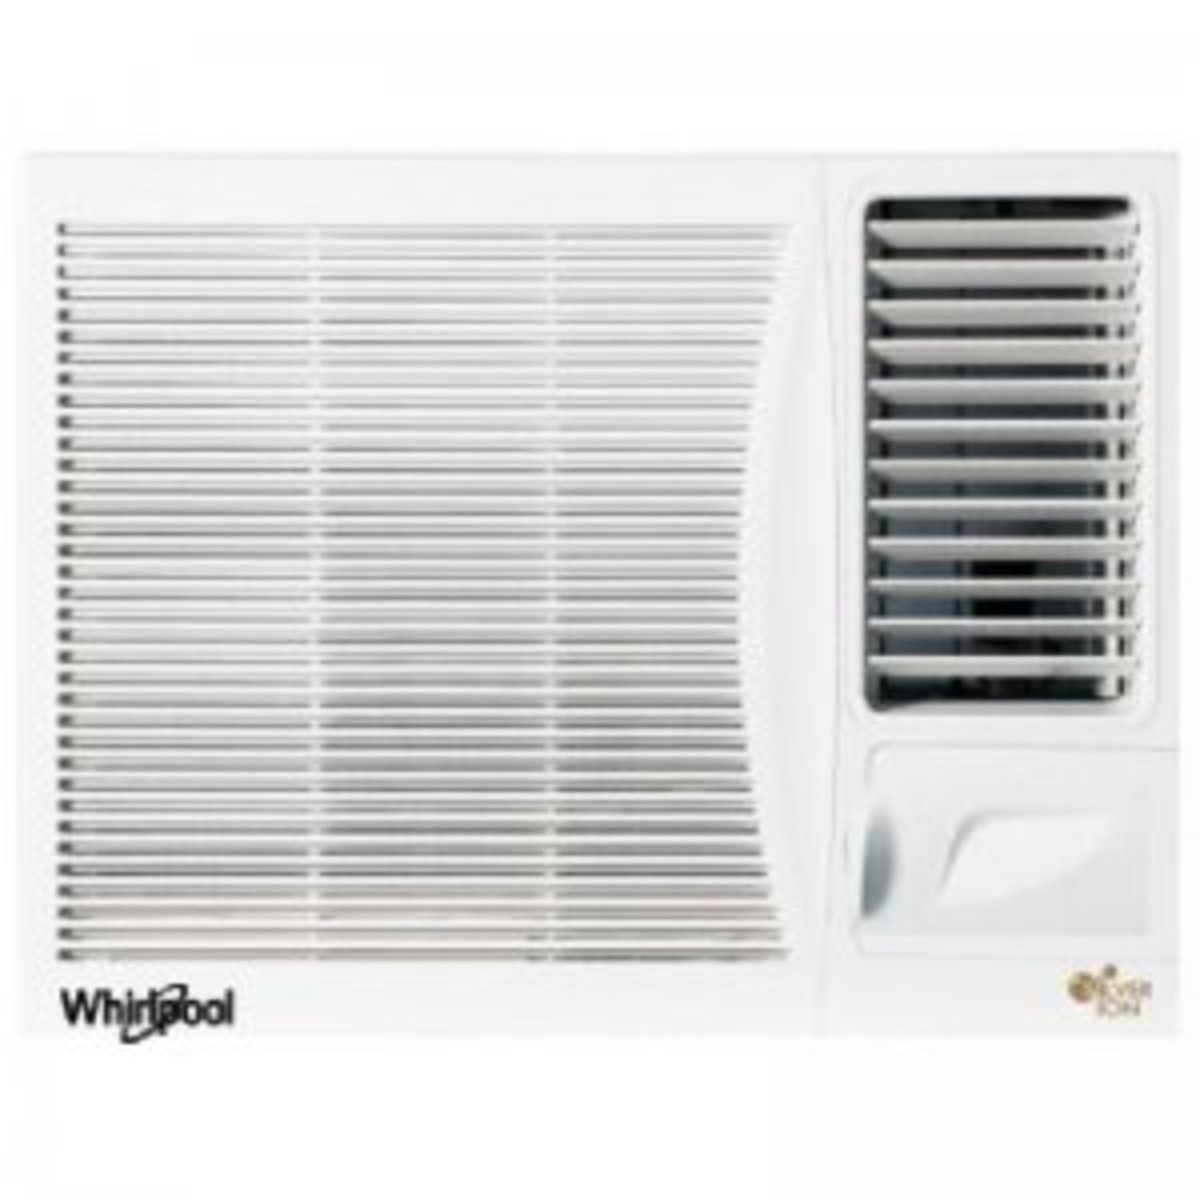 AWA09210N 1.0HP Window Type Air Conditioner  Hong Kong Warranty Genuine Products